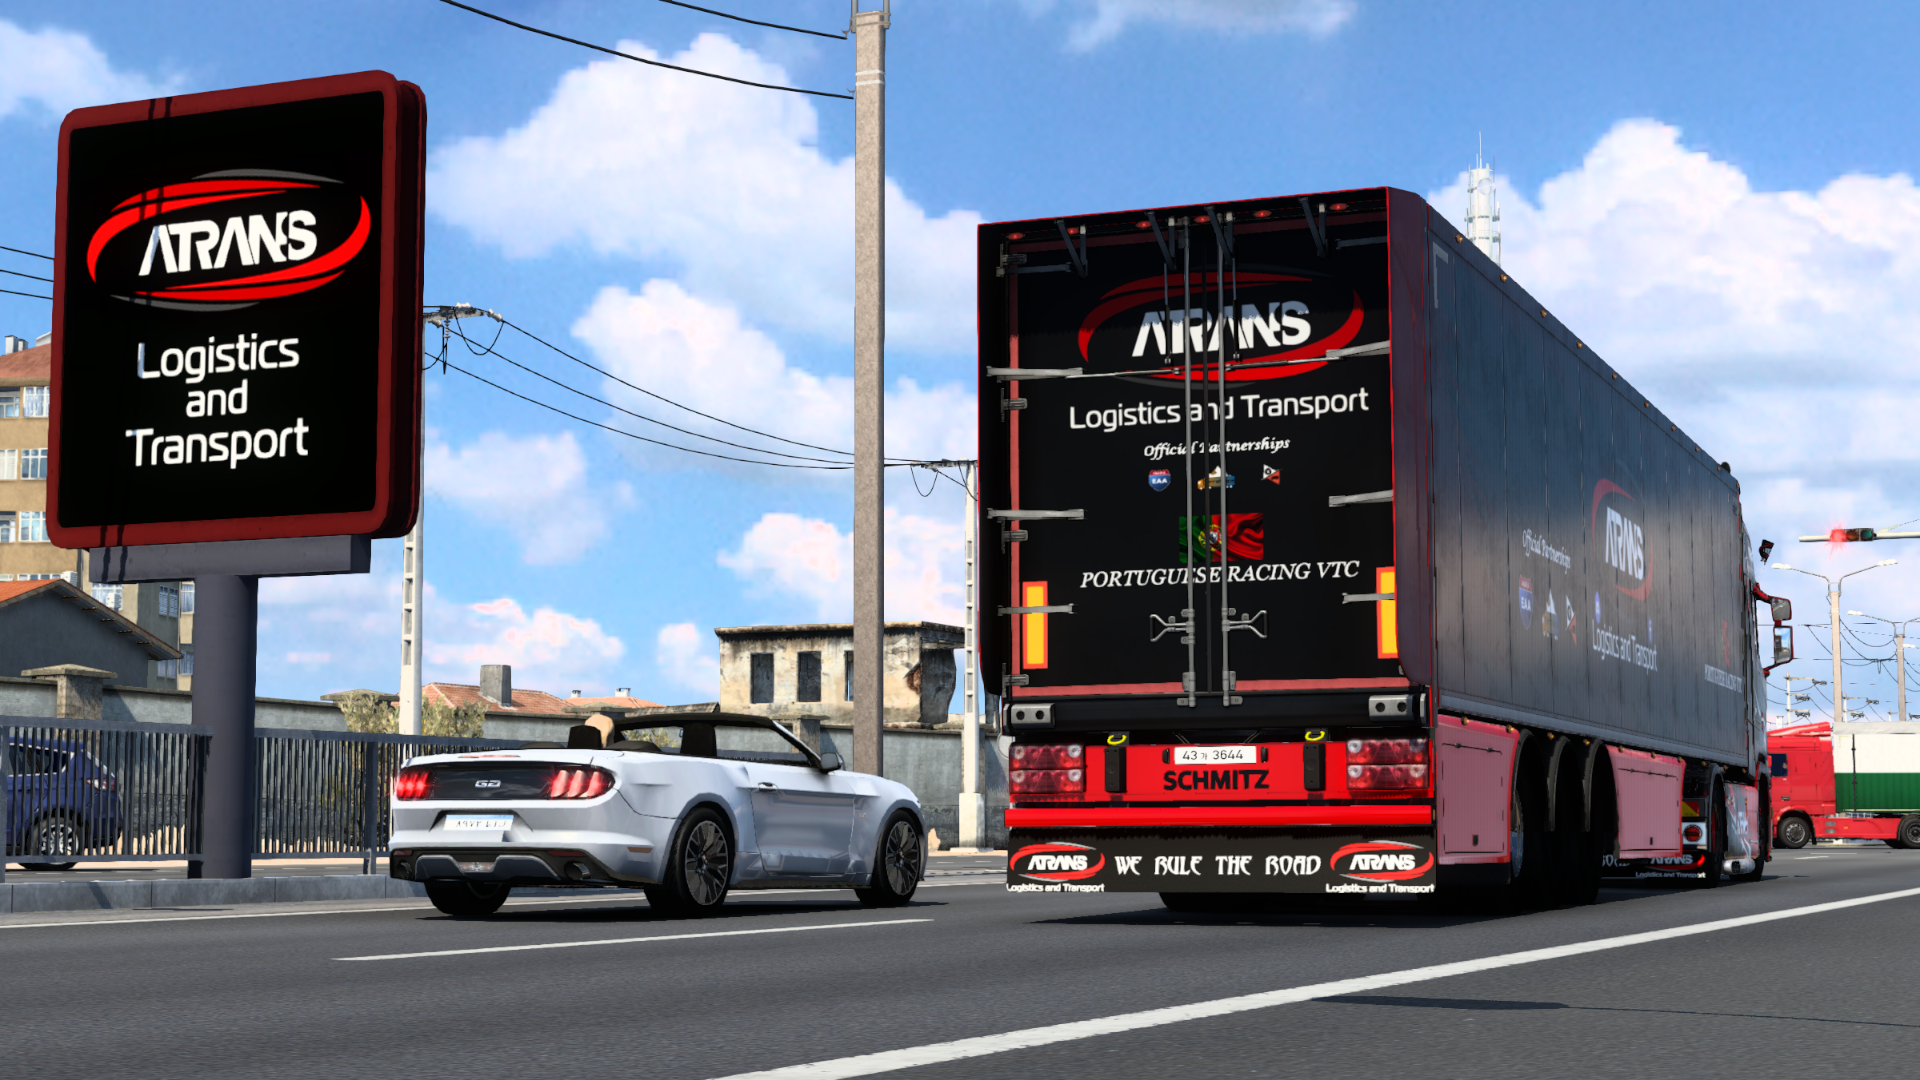 ets2_20211019_184404_00.png